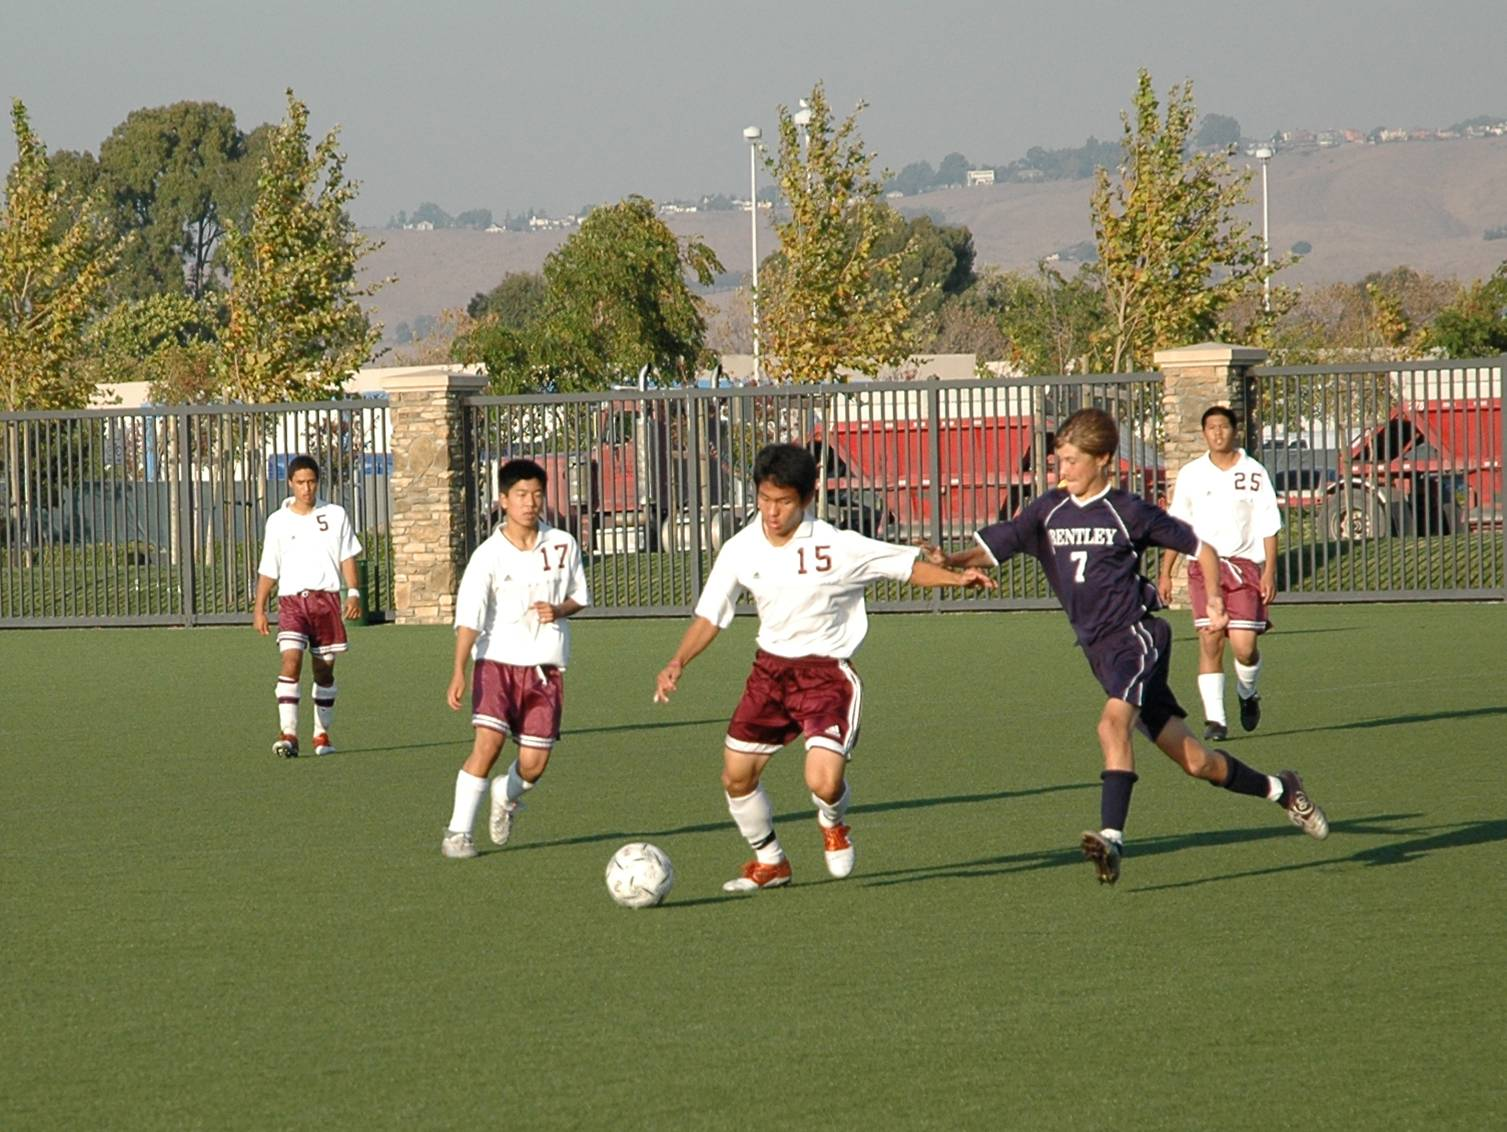 Sports Try-outs On Monday, Aug. 17